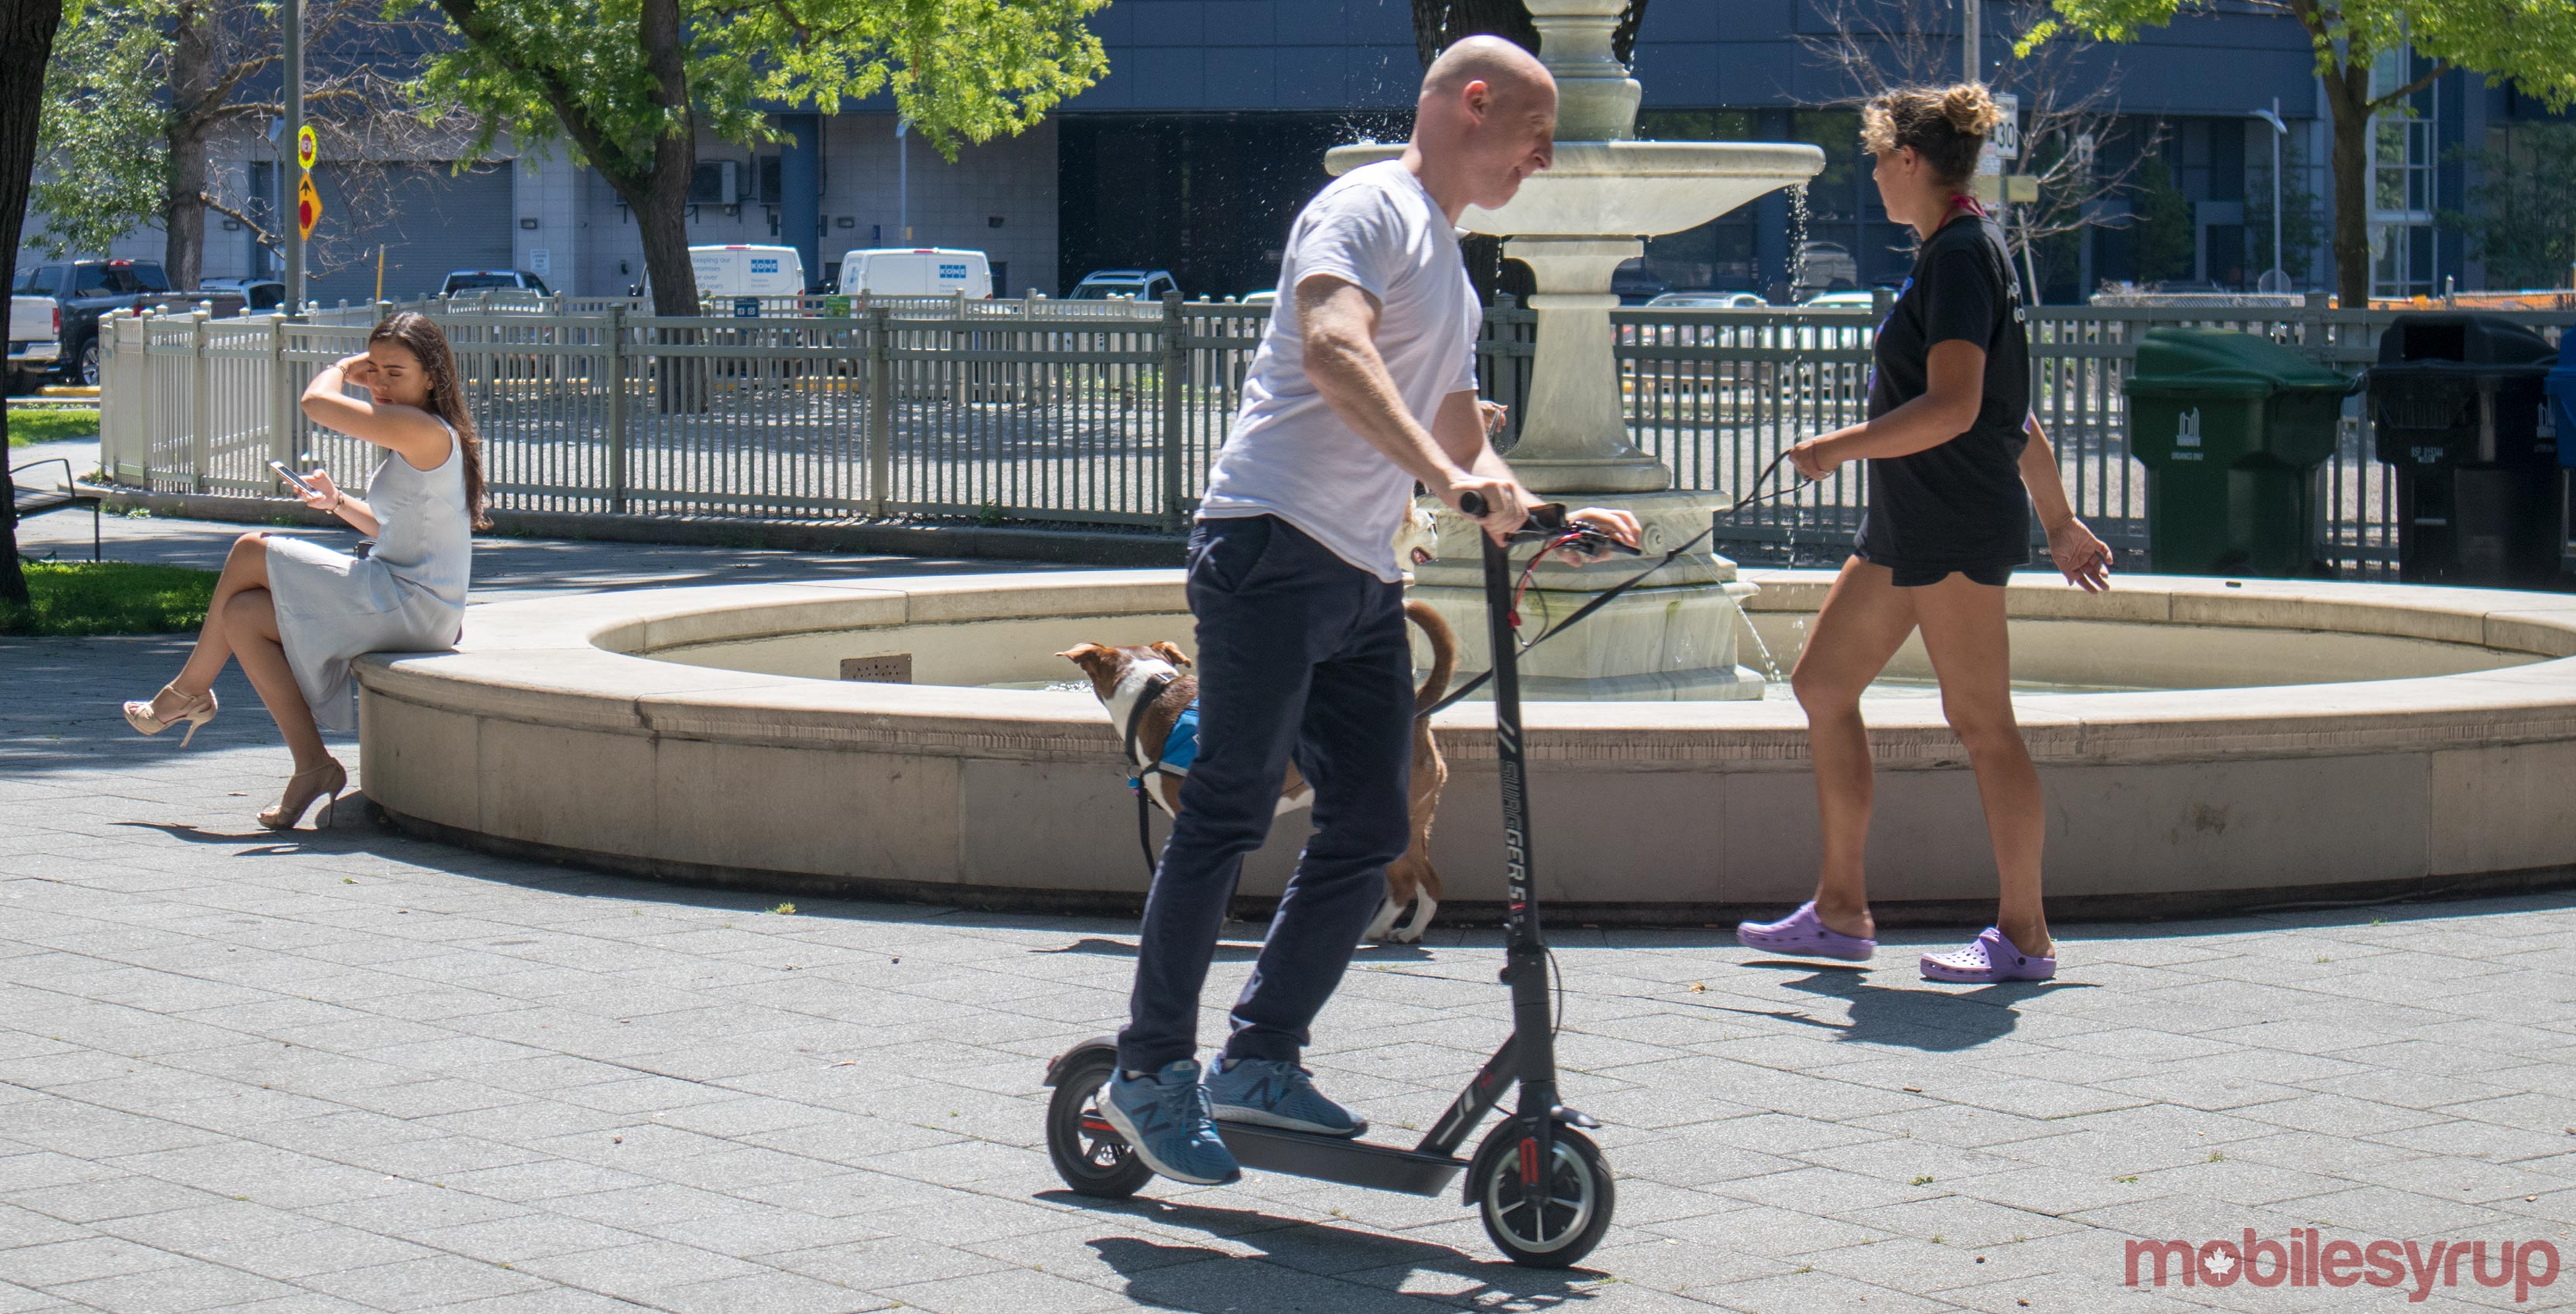 Swagtron Swagger 5 Scooter Review: Dreams come back alive